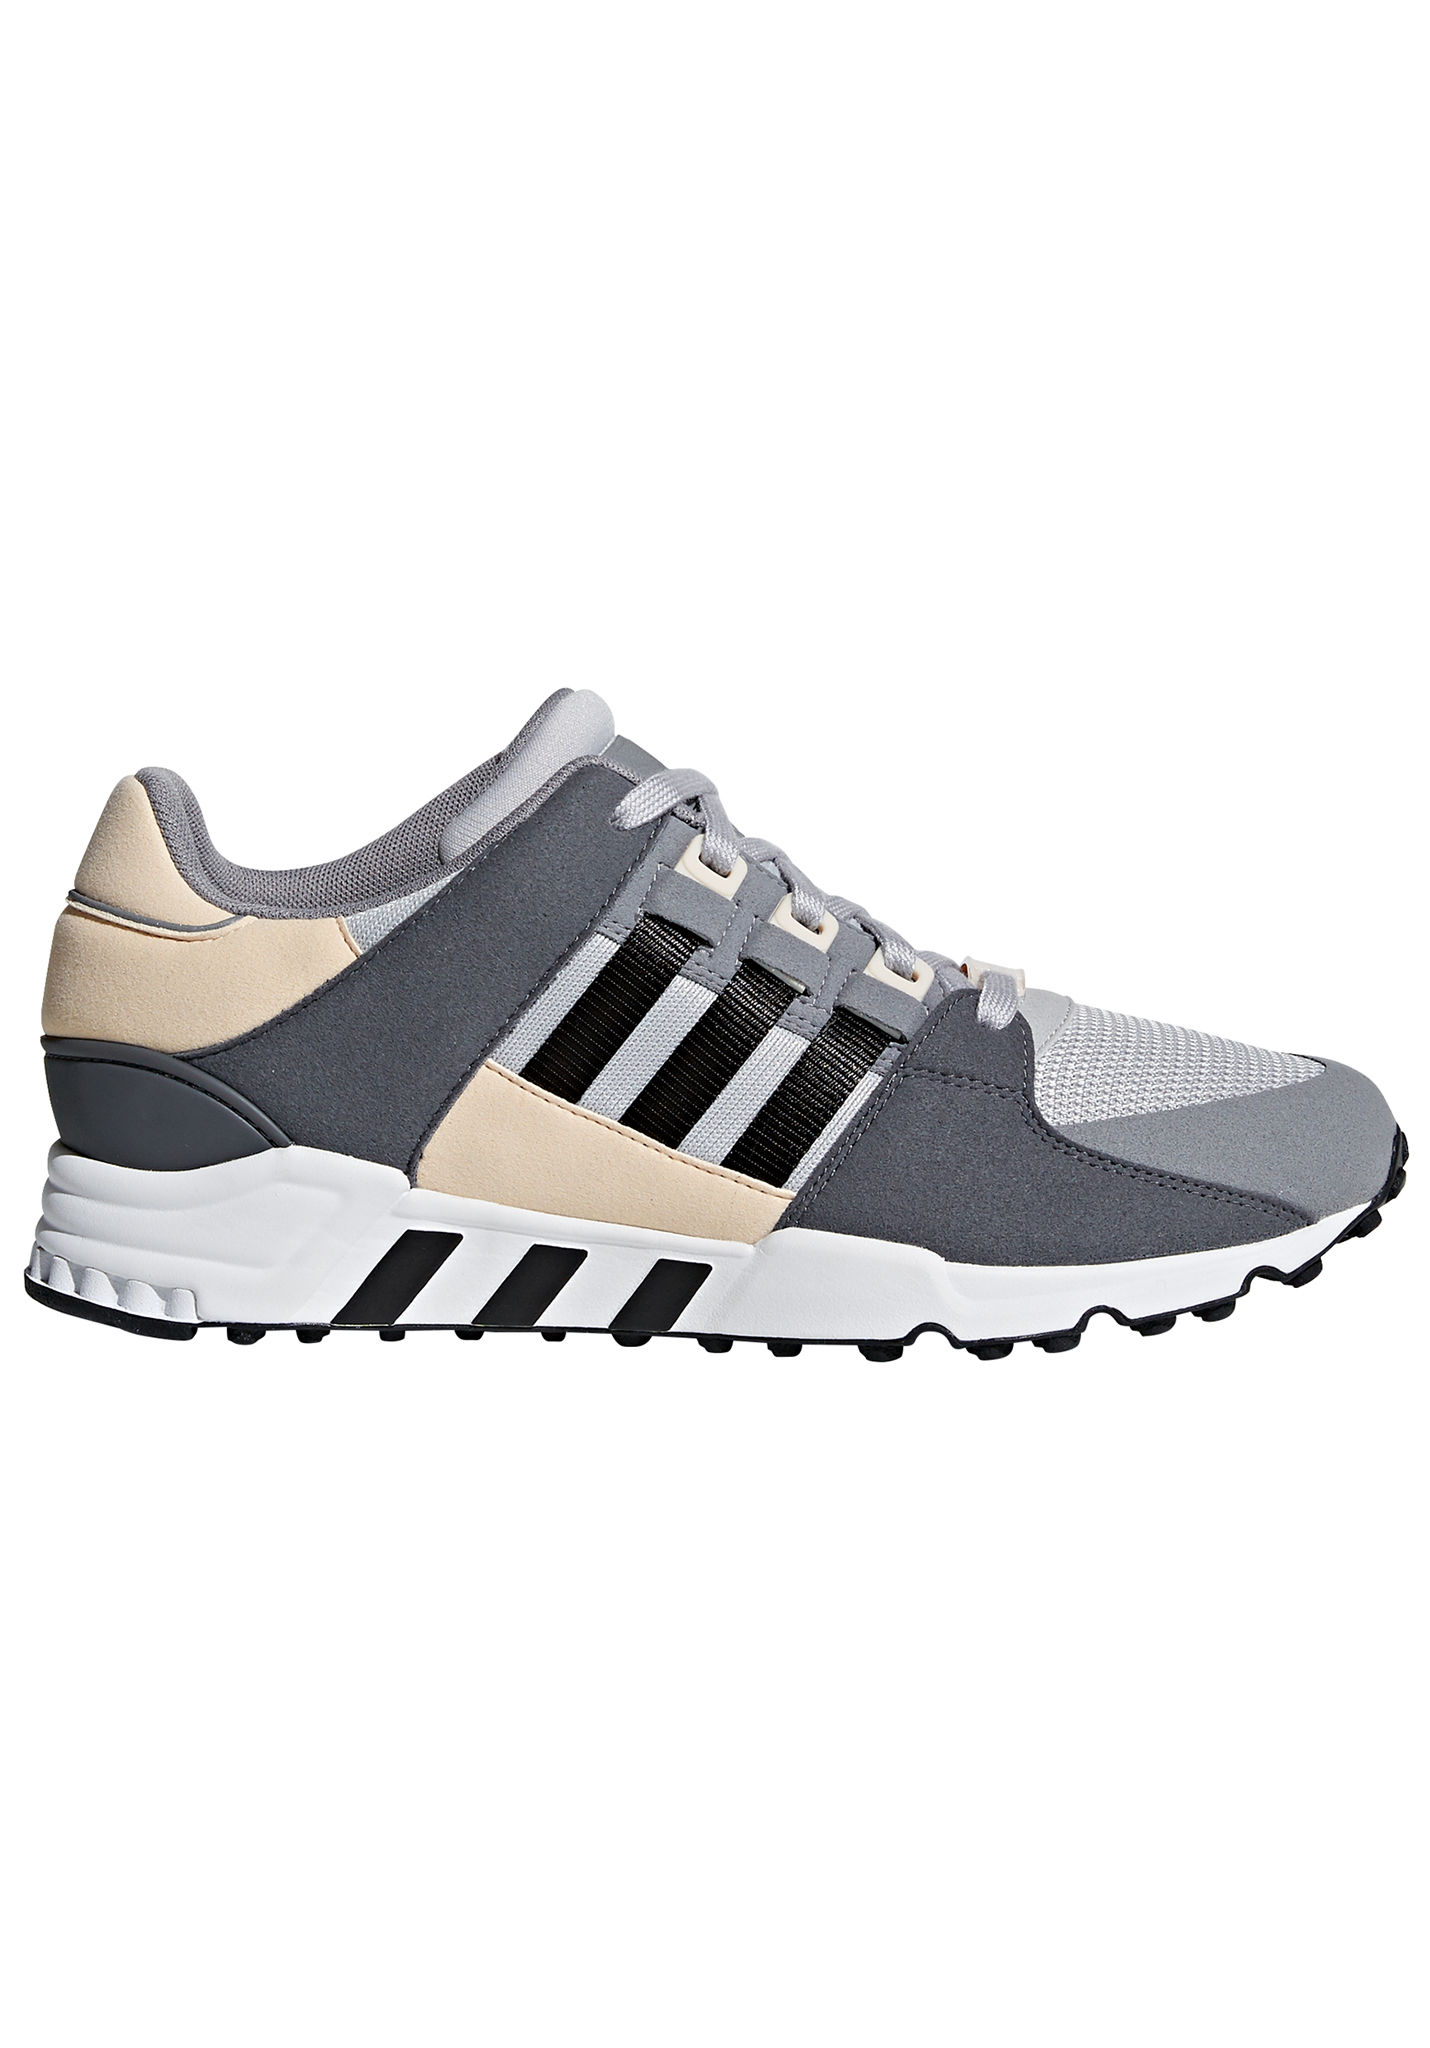 newest c82ce 47490 ADIDAS ORIGINALS Eqt Support Rf - Sneakers for Men - Grey